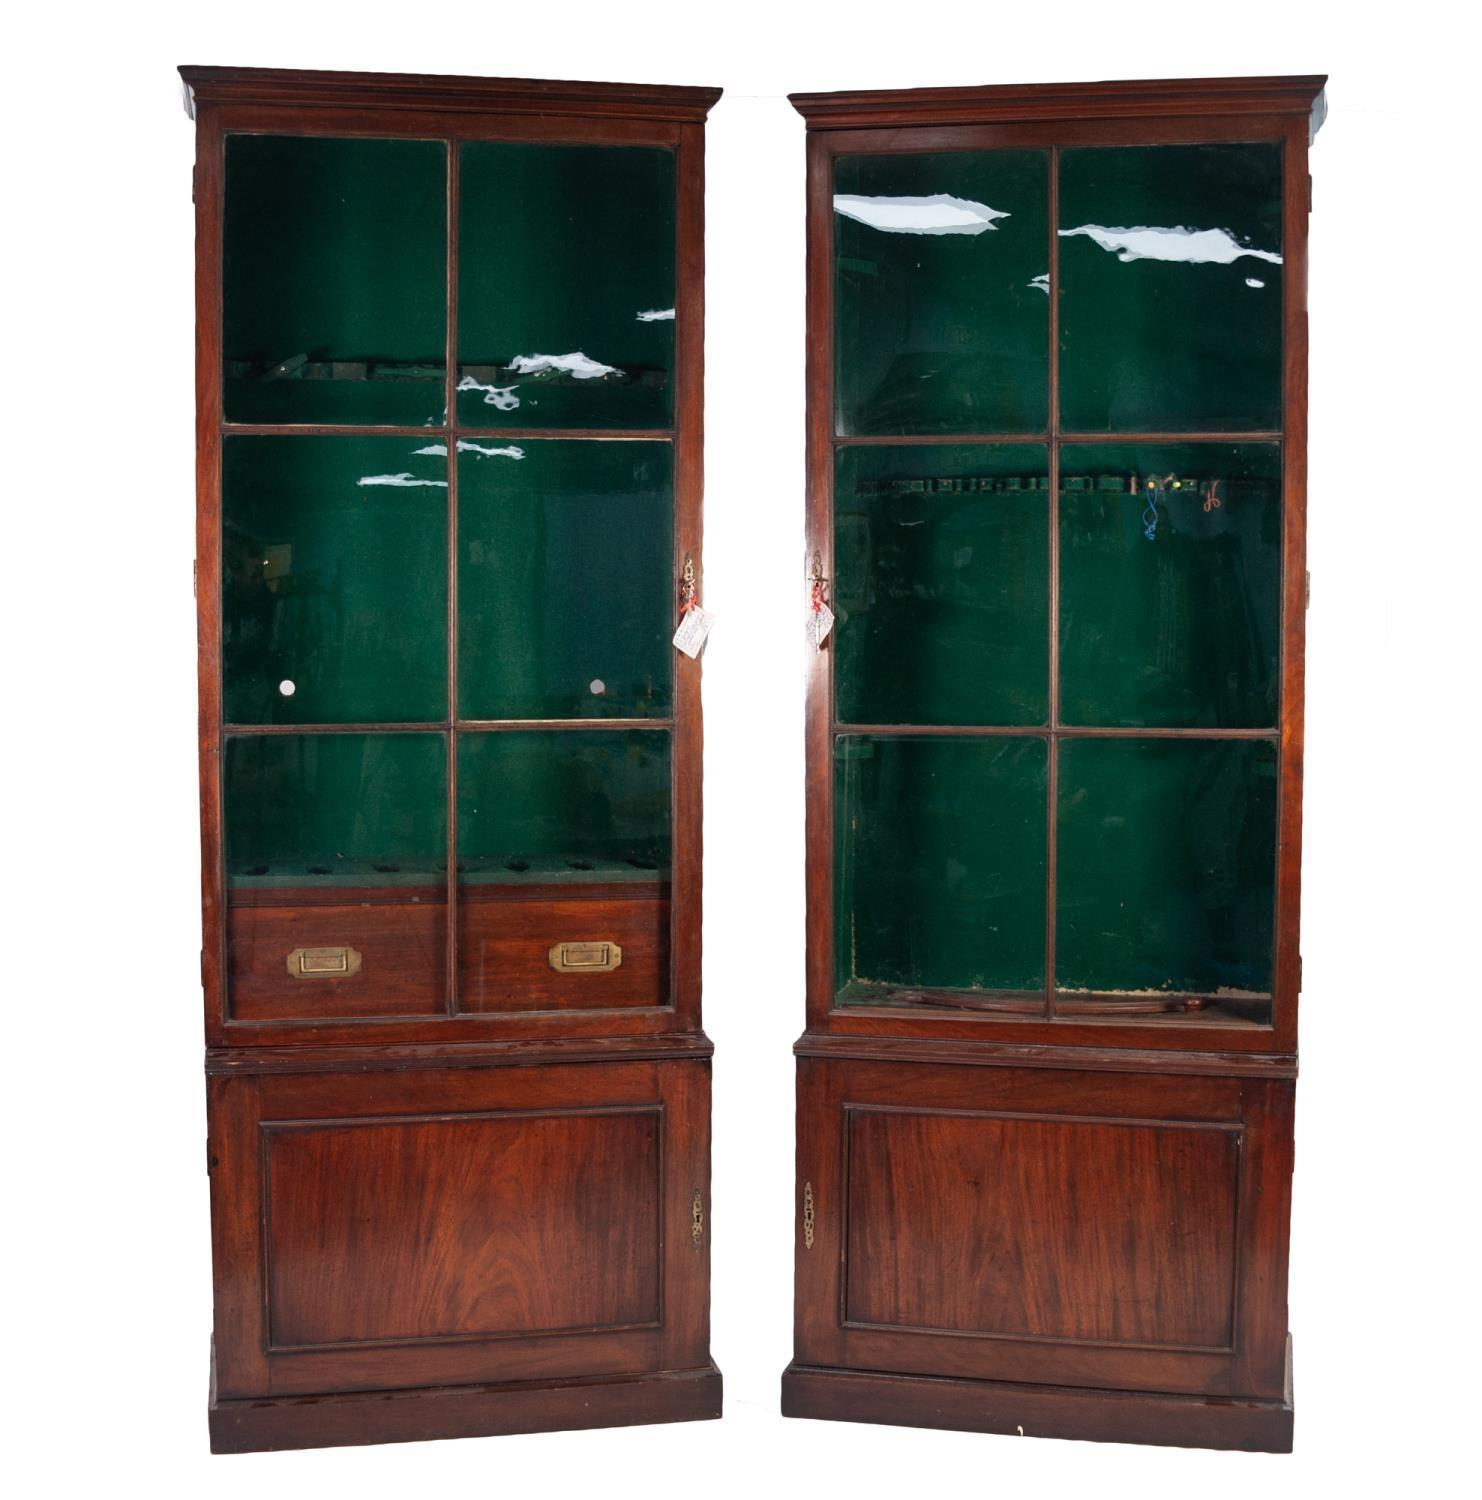 Lot 180 - PAIR OF GEORGE III MAHOGANY SHOTGUN AND FISHING ROD CABINETS, each with moulded cornice above a